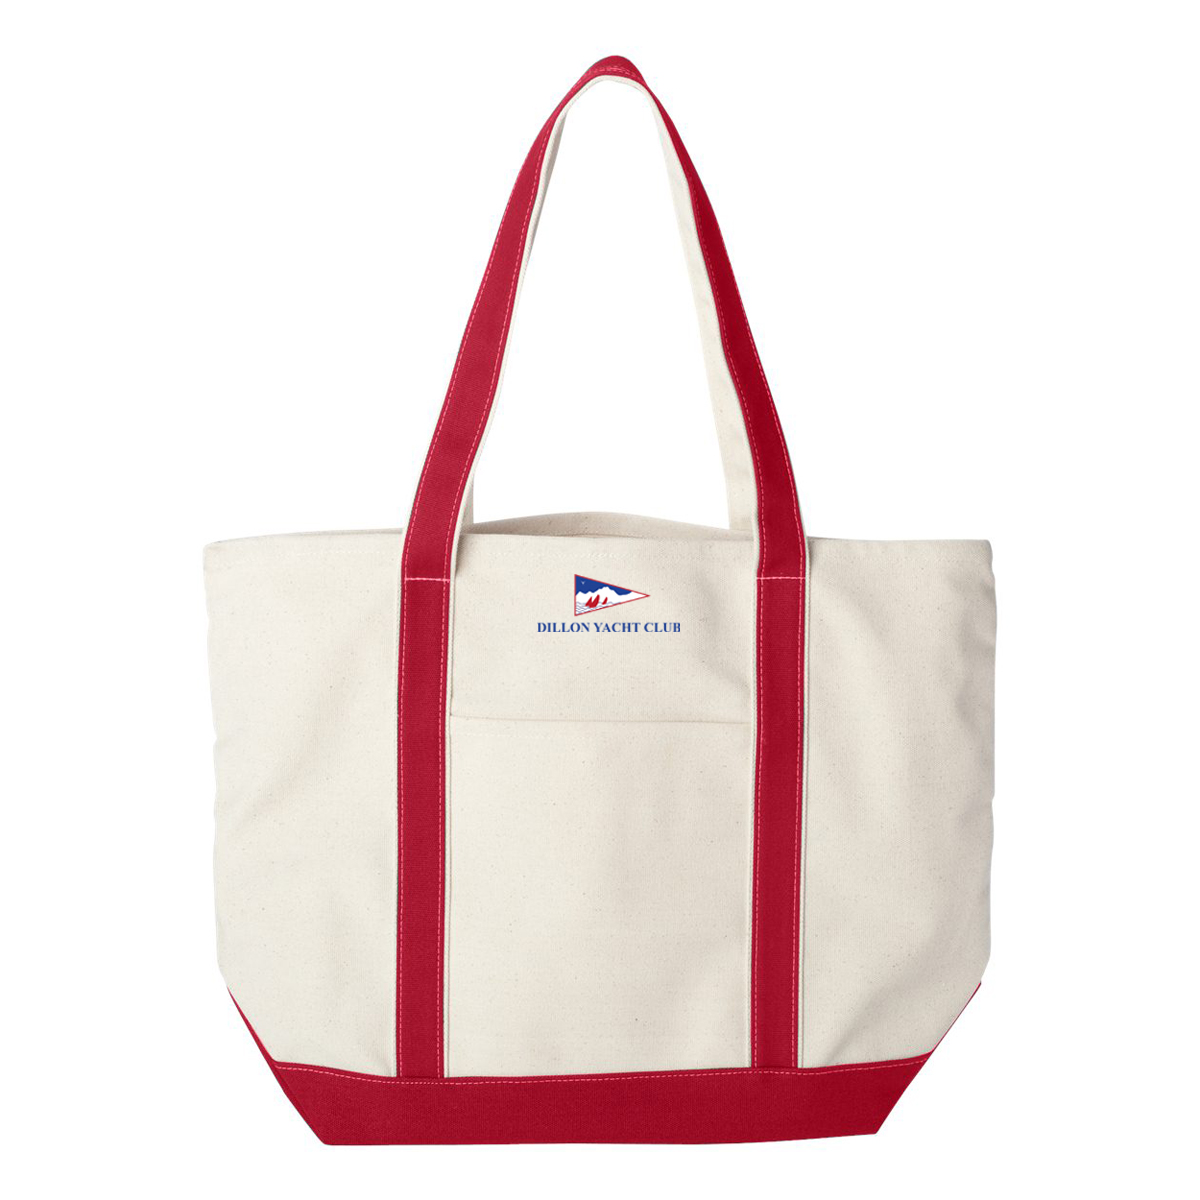 Dillon Yacht Club- Canvas Tote